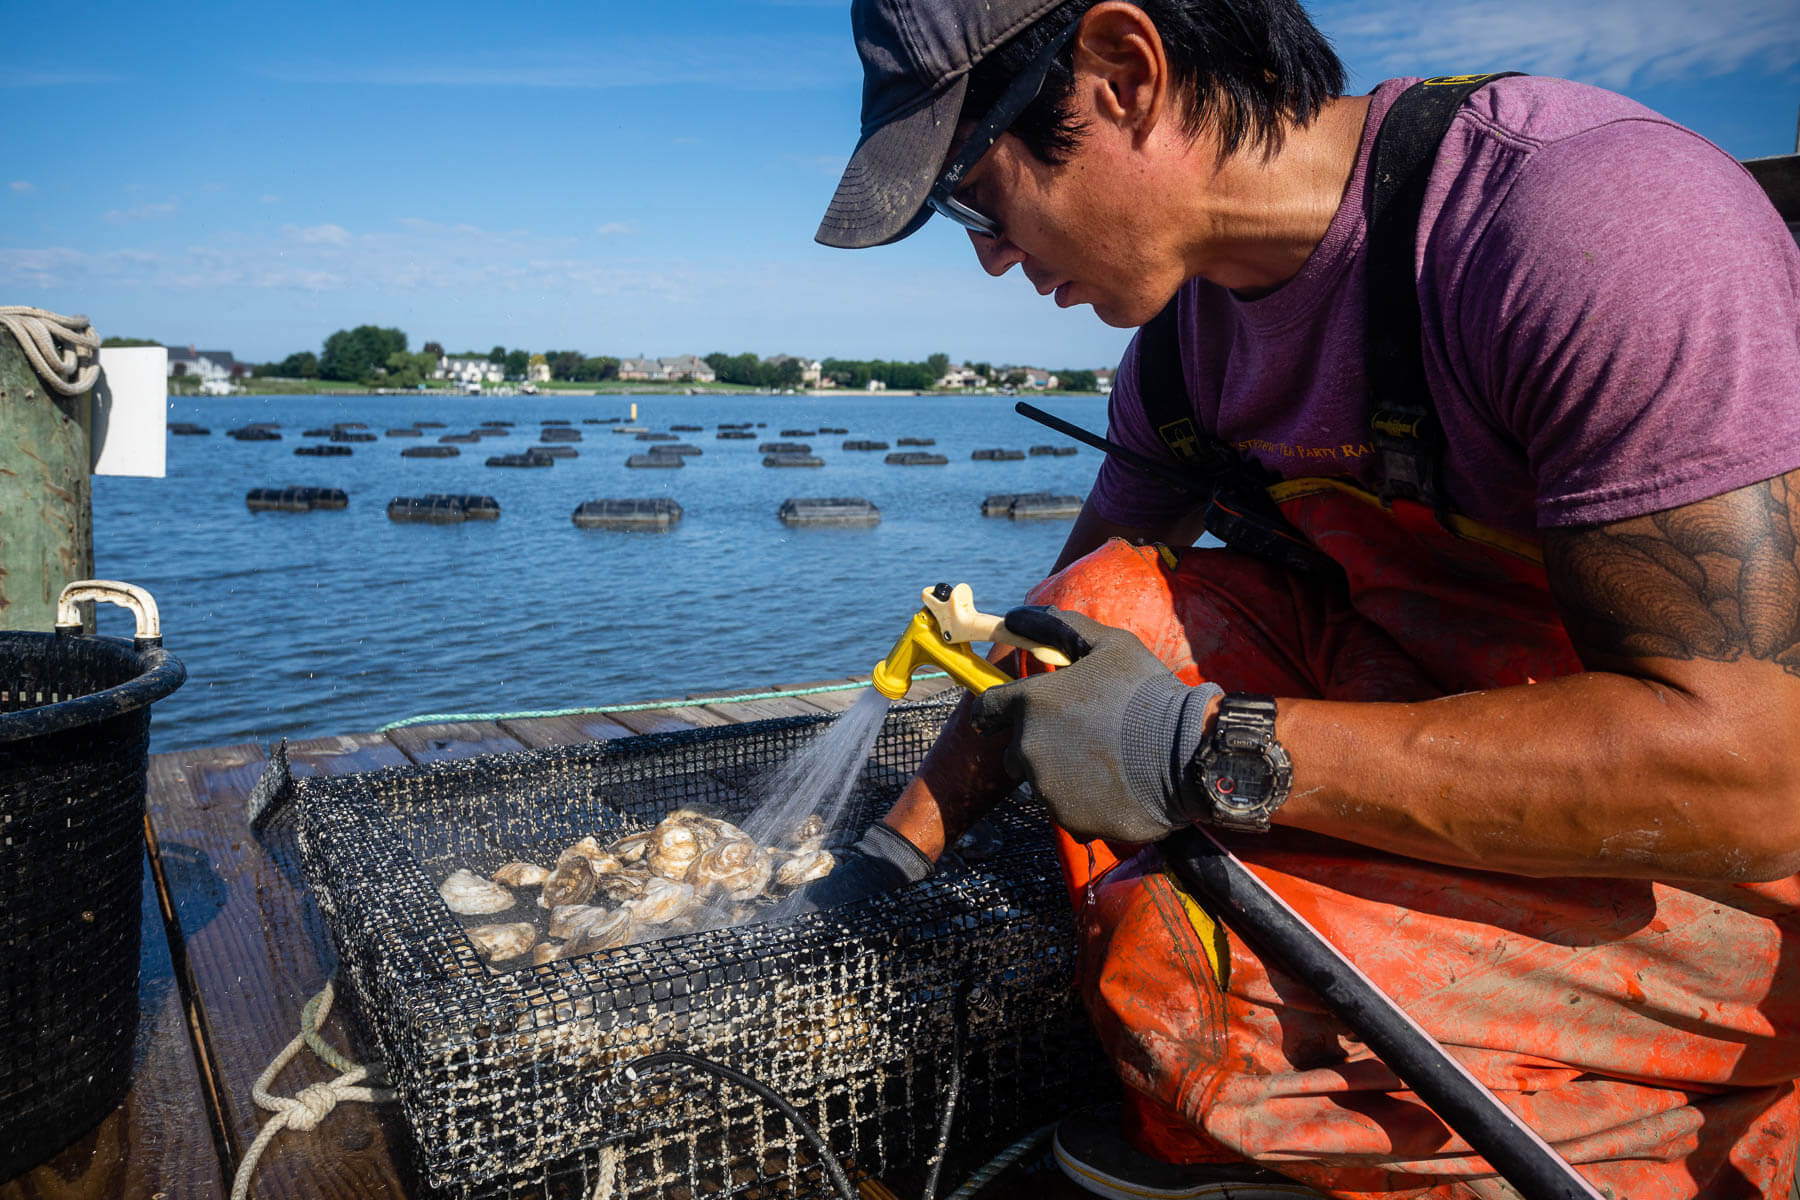 Man cleans oyster cage